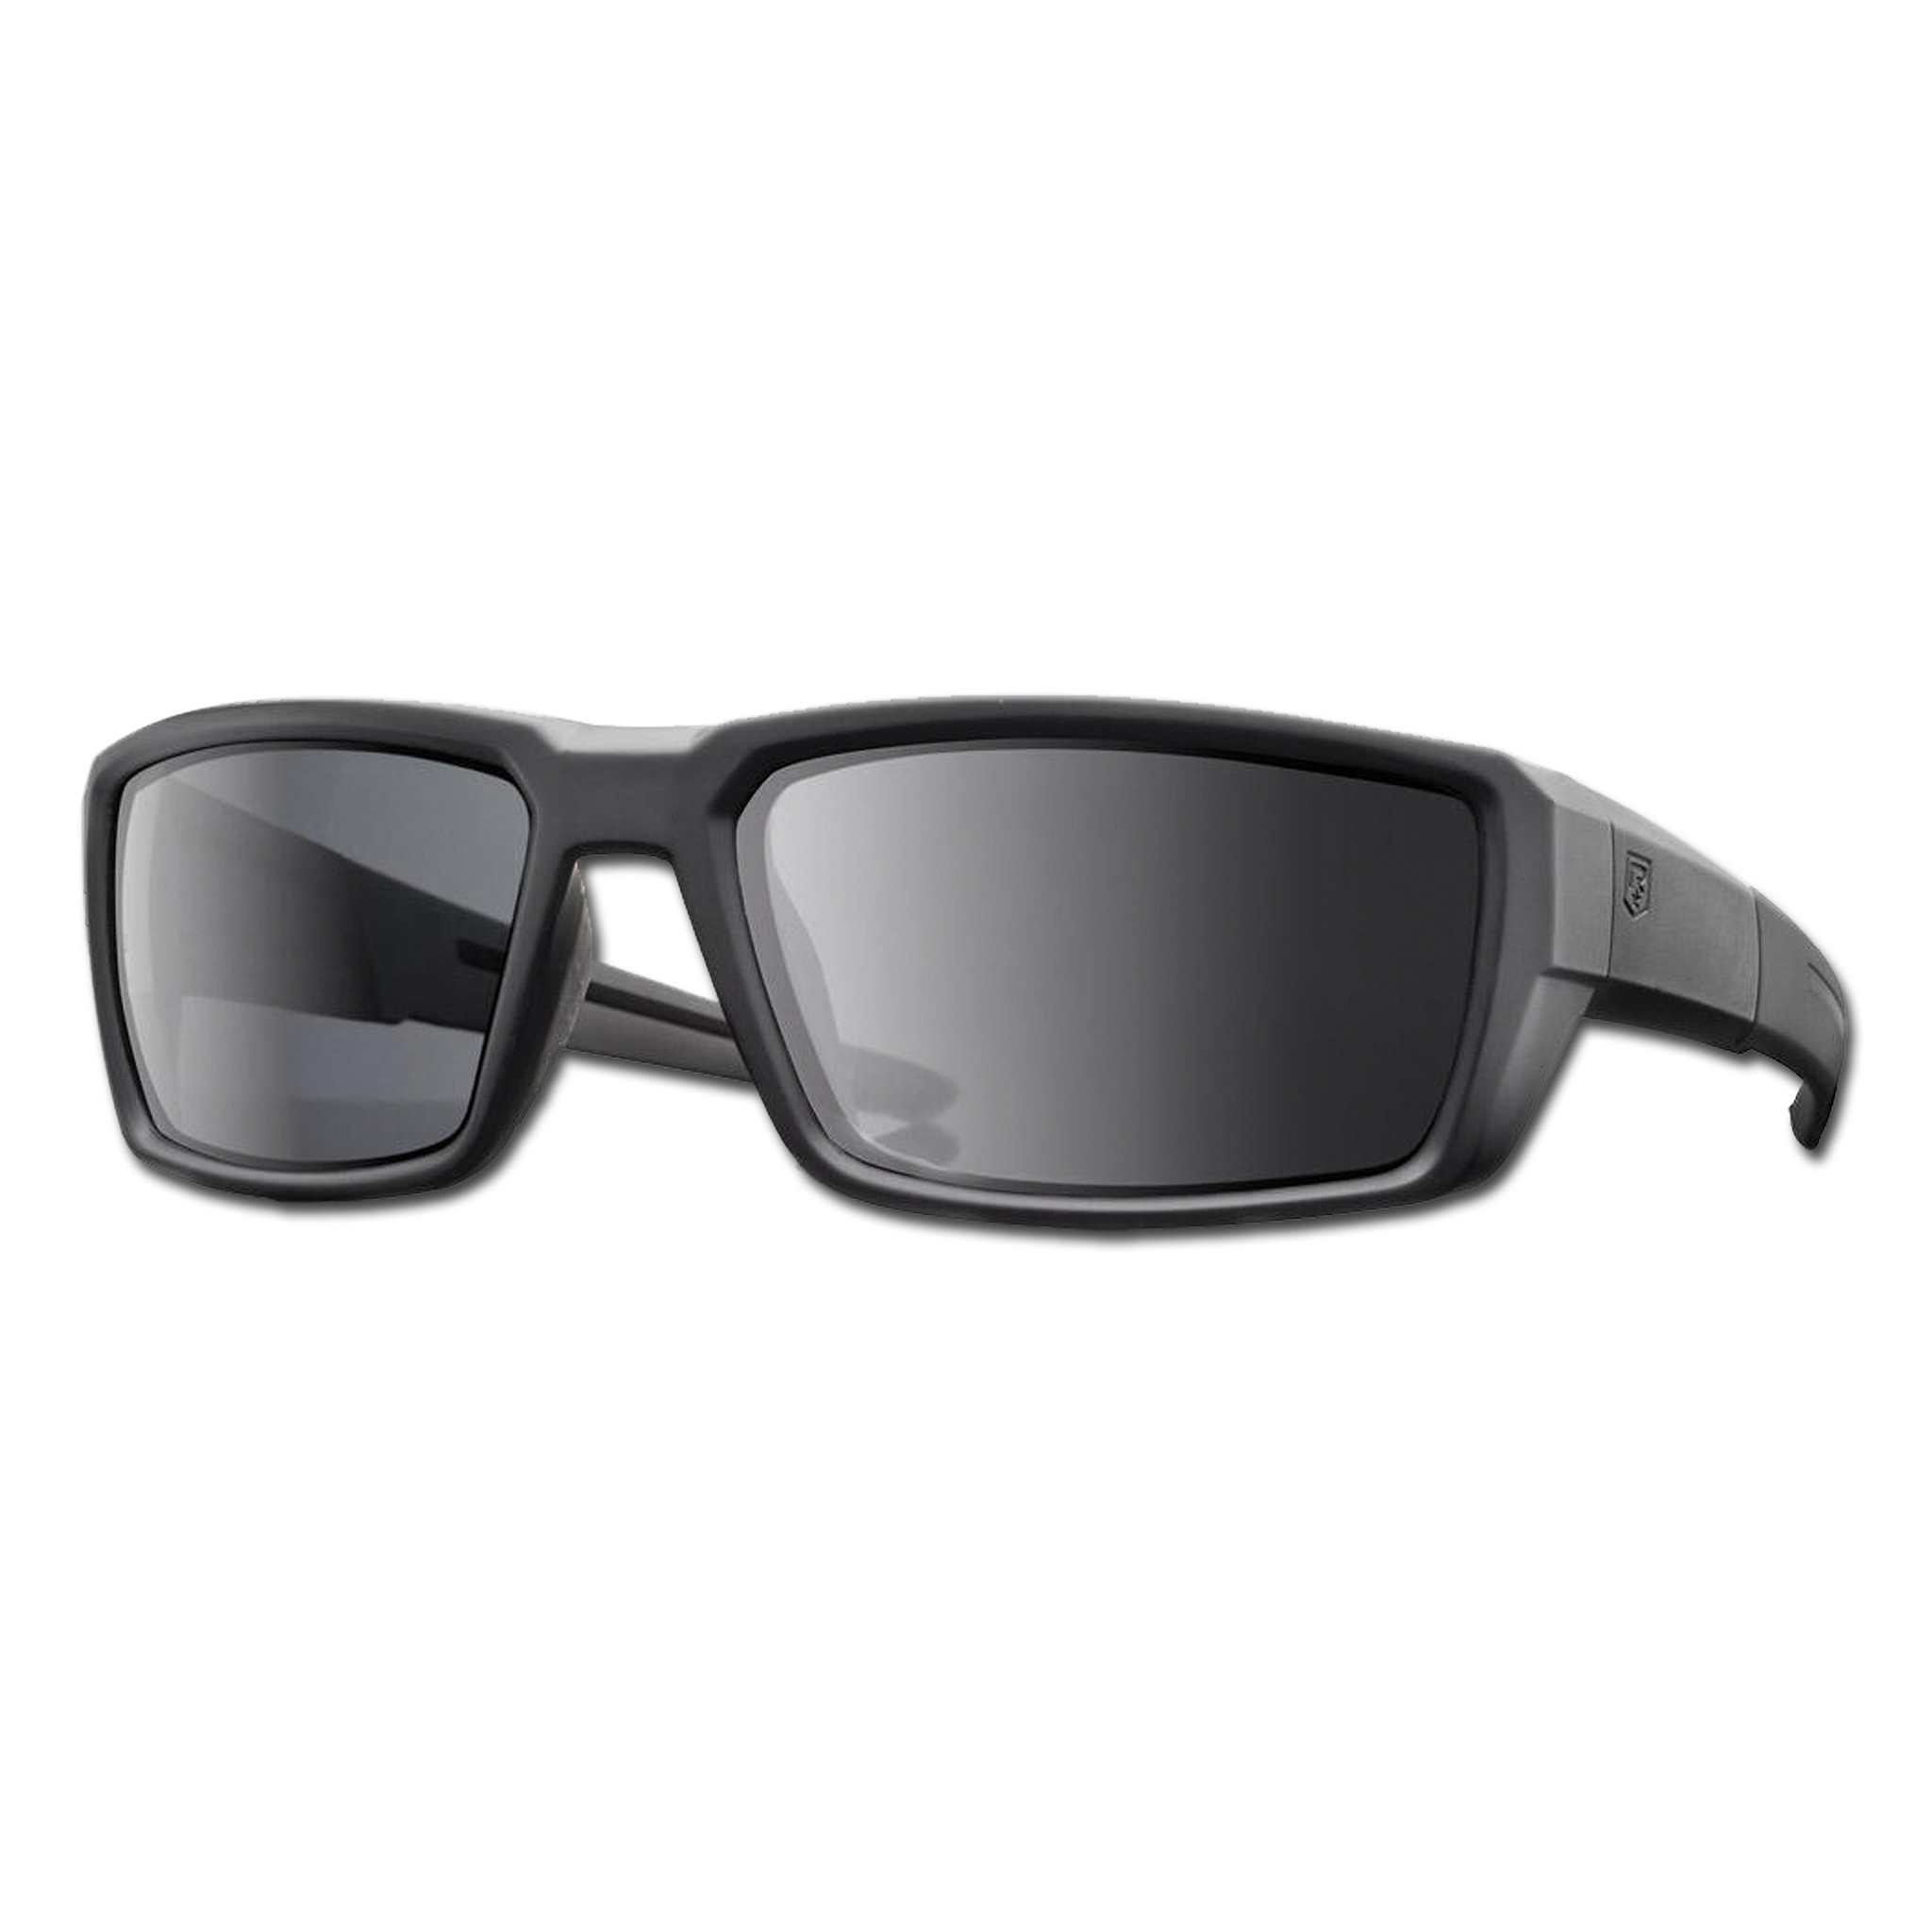 Revision Military Revision Military Vipertail Ballistic Sunglasses